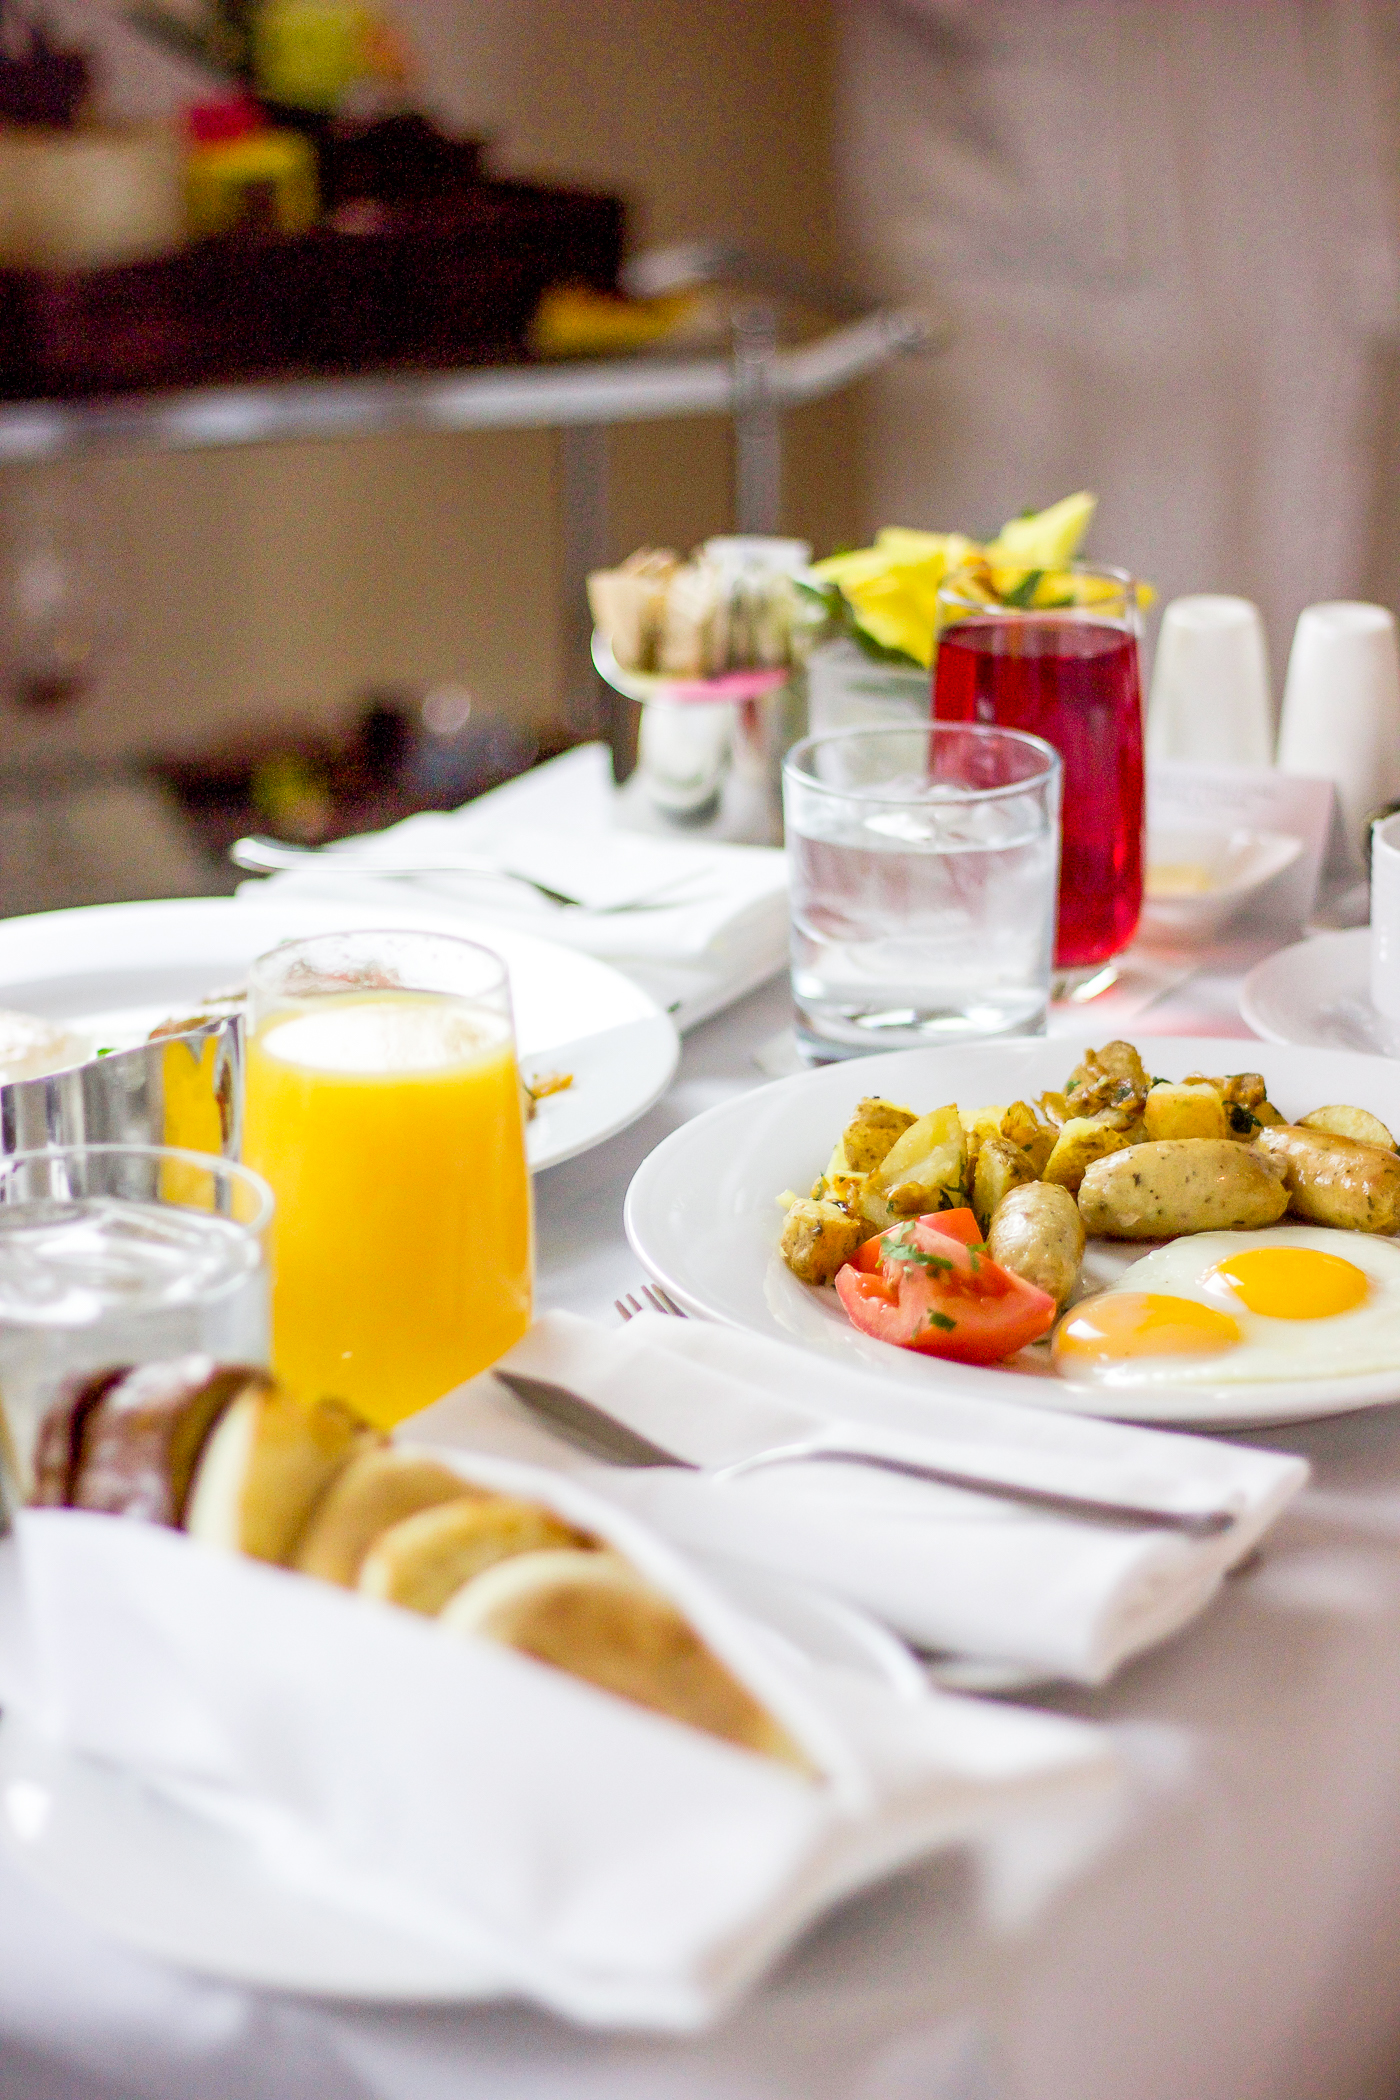 Breakfast in bed at the Trump Toronto Hotel